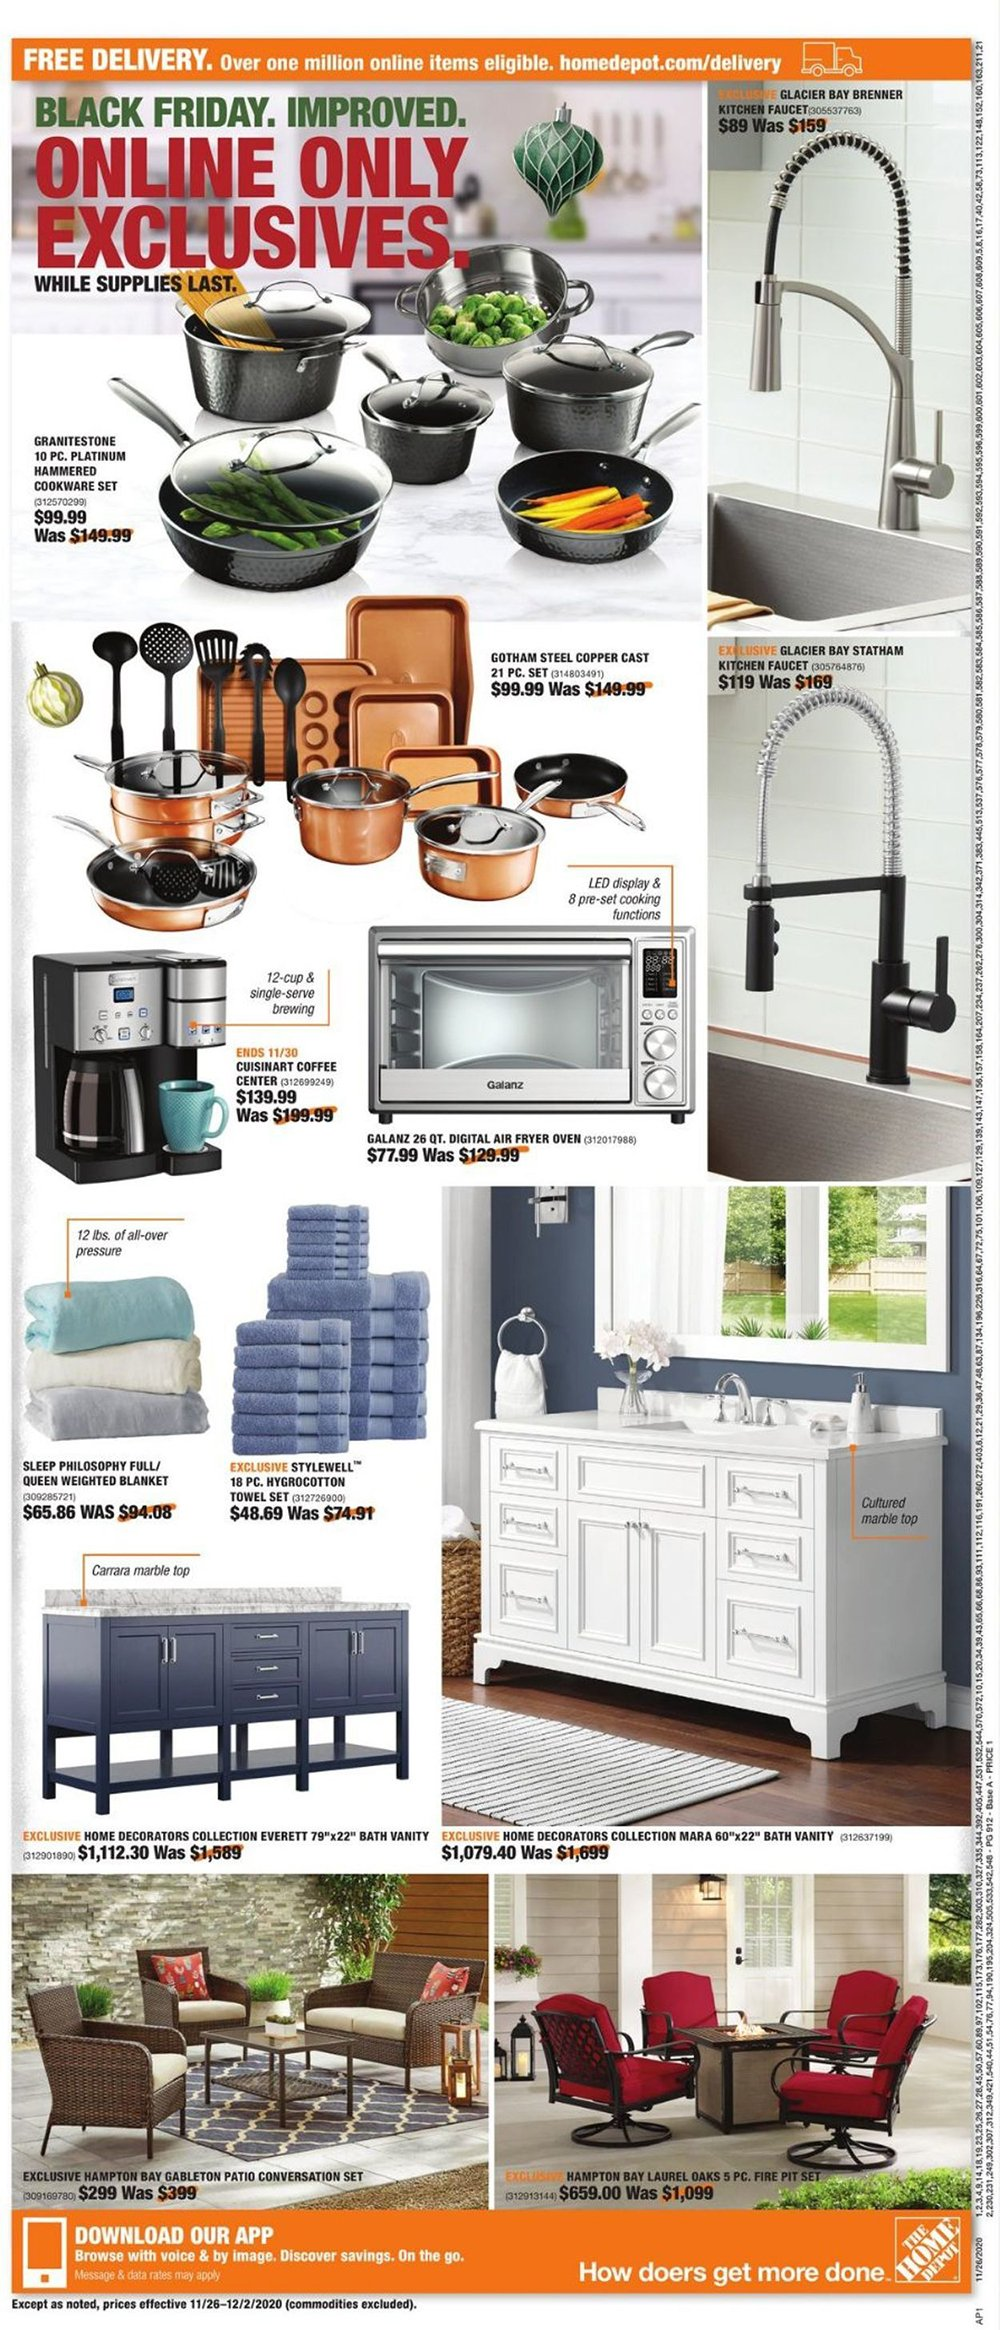 Home Depot Cyber Monday 2020 Page 3